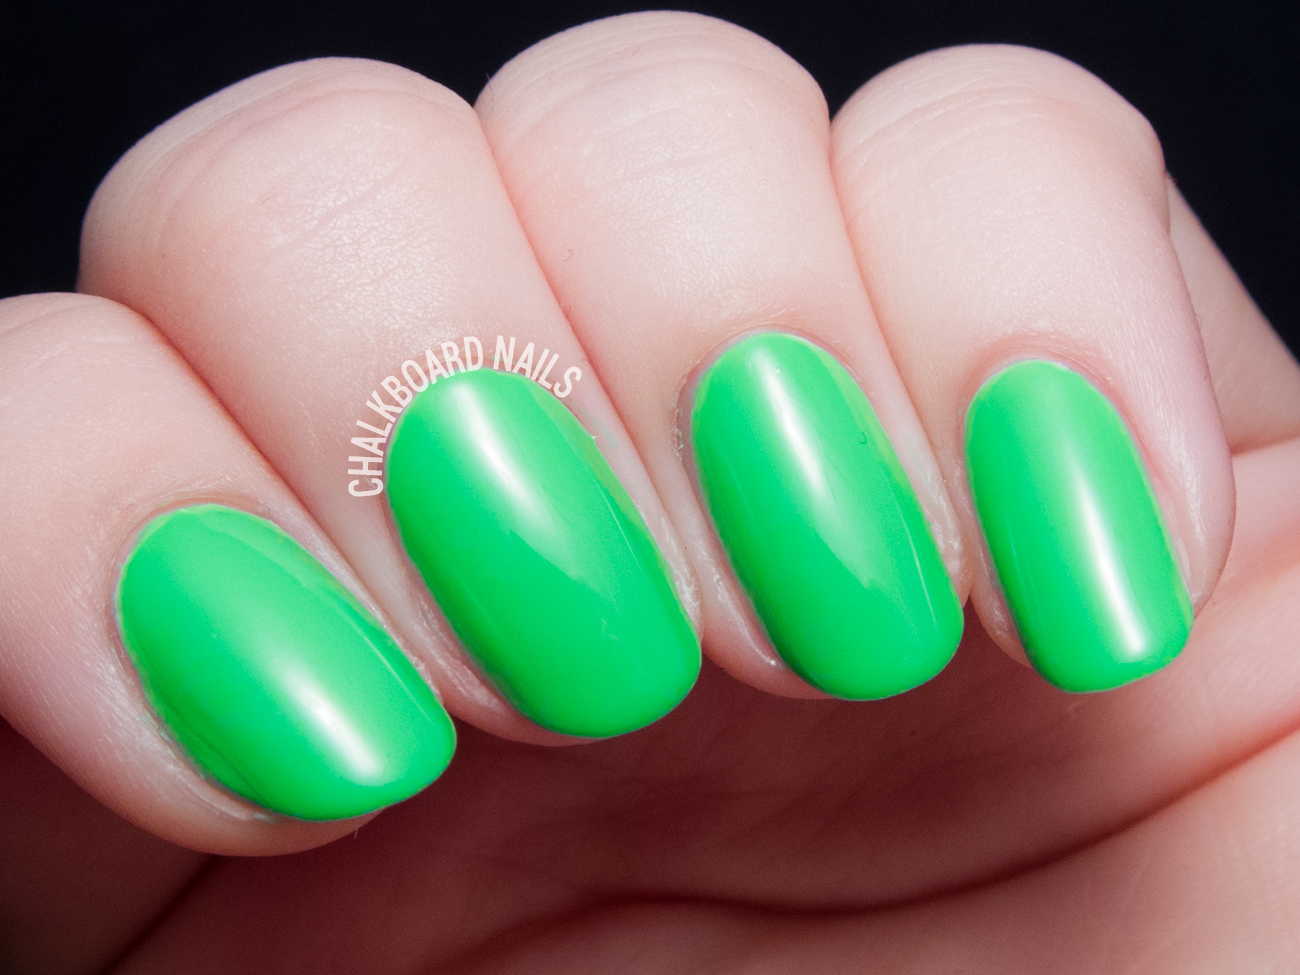 China Glaze Treble Maker via @chalkboardnails